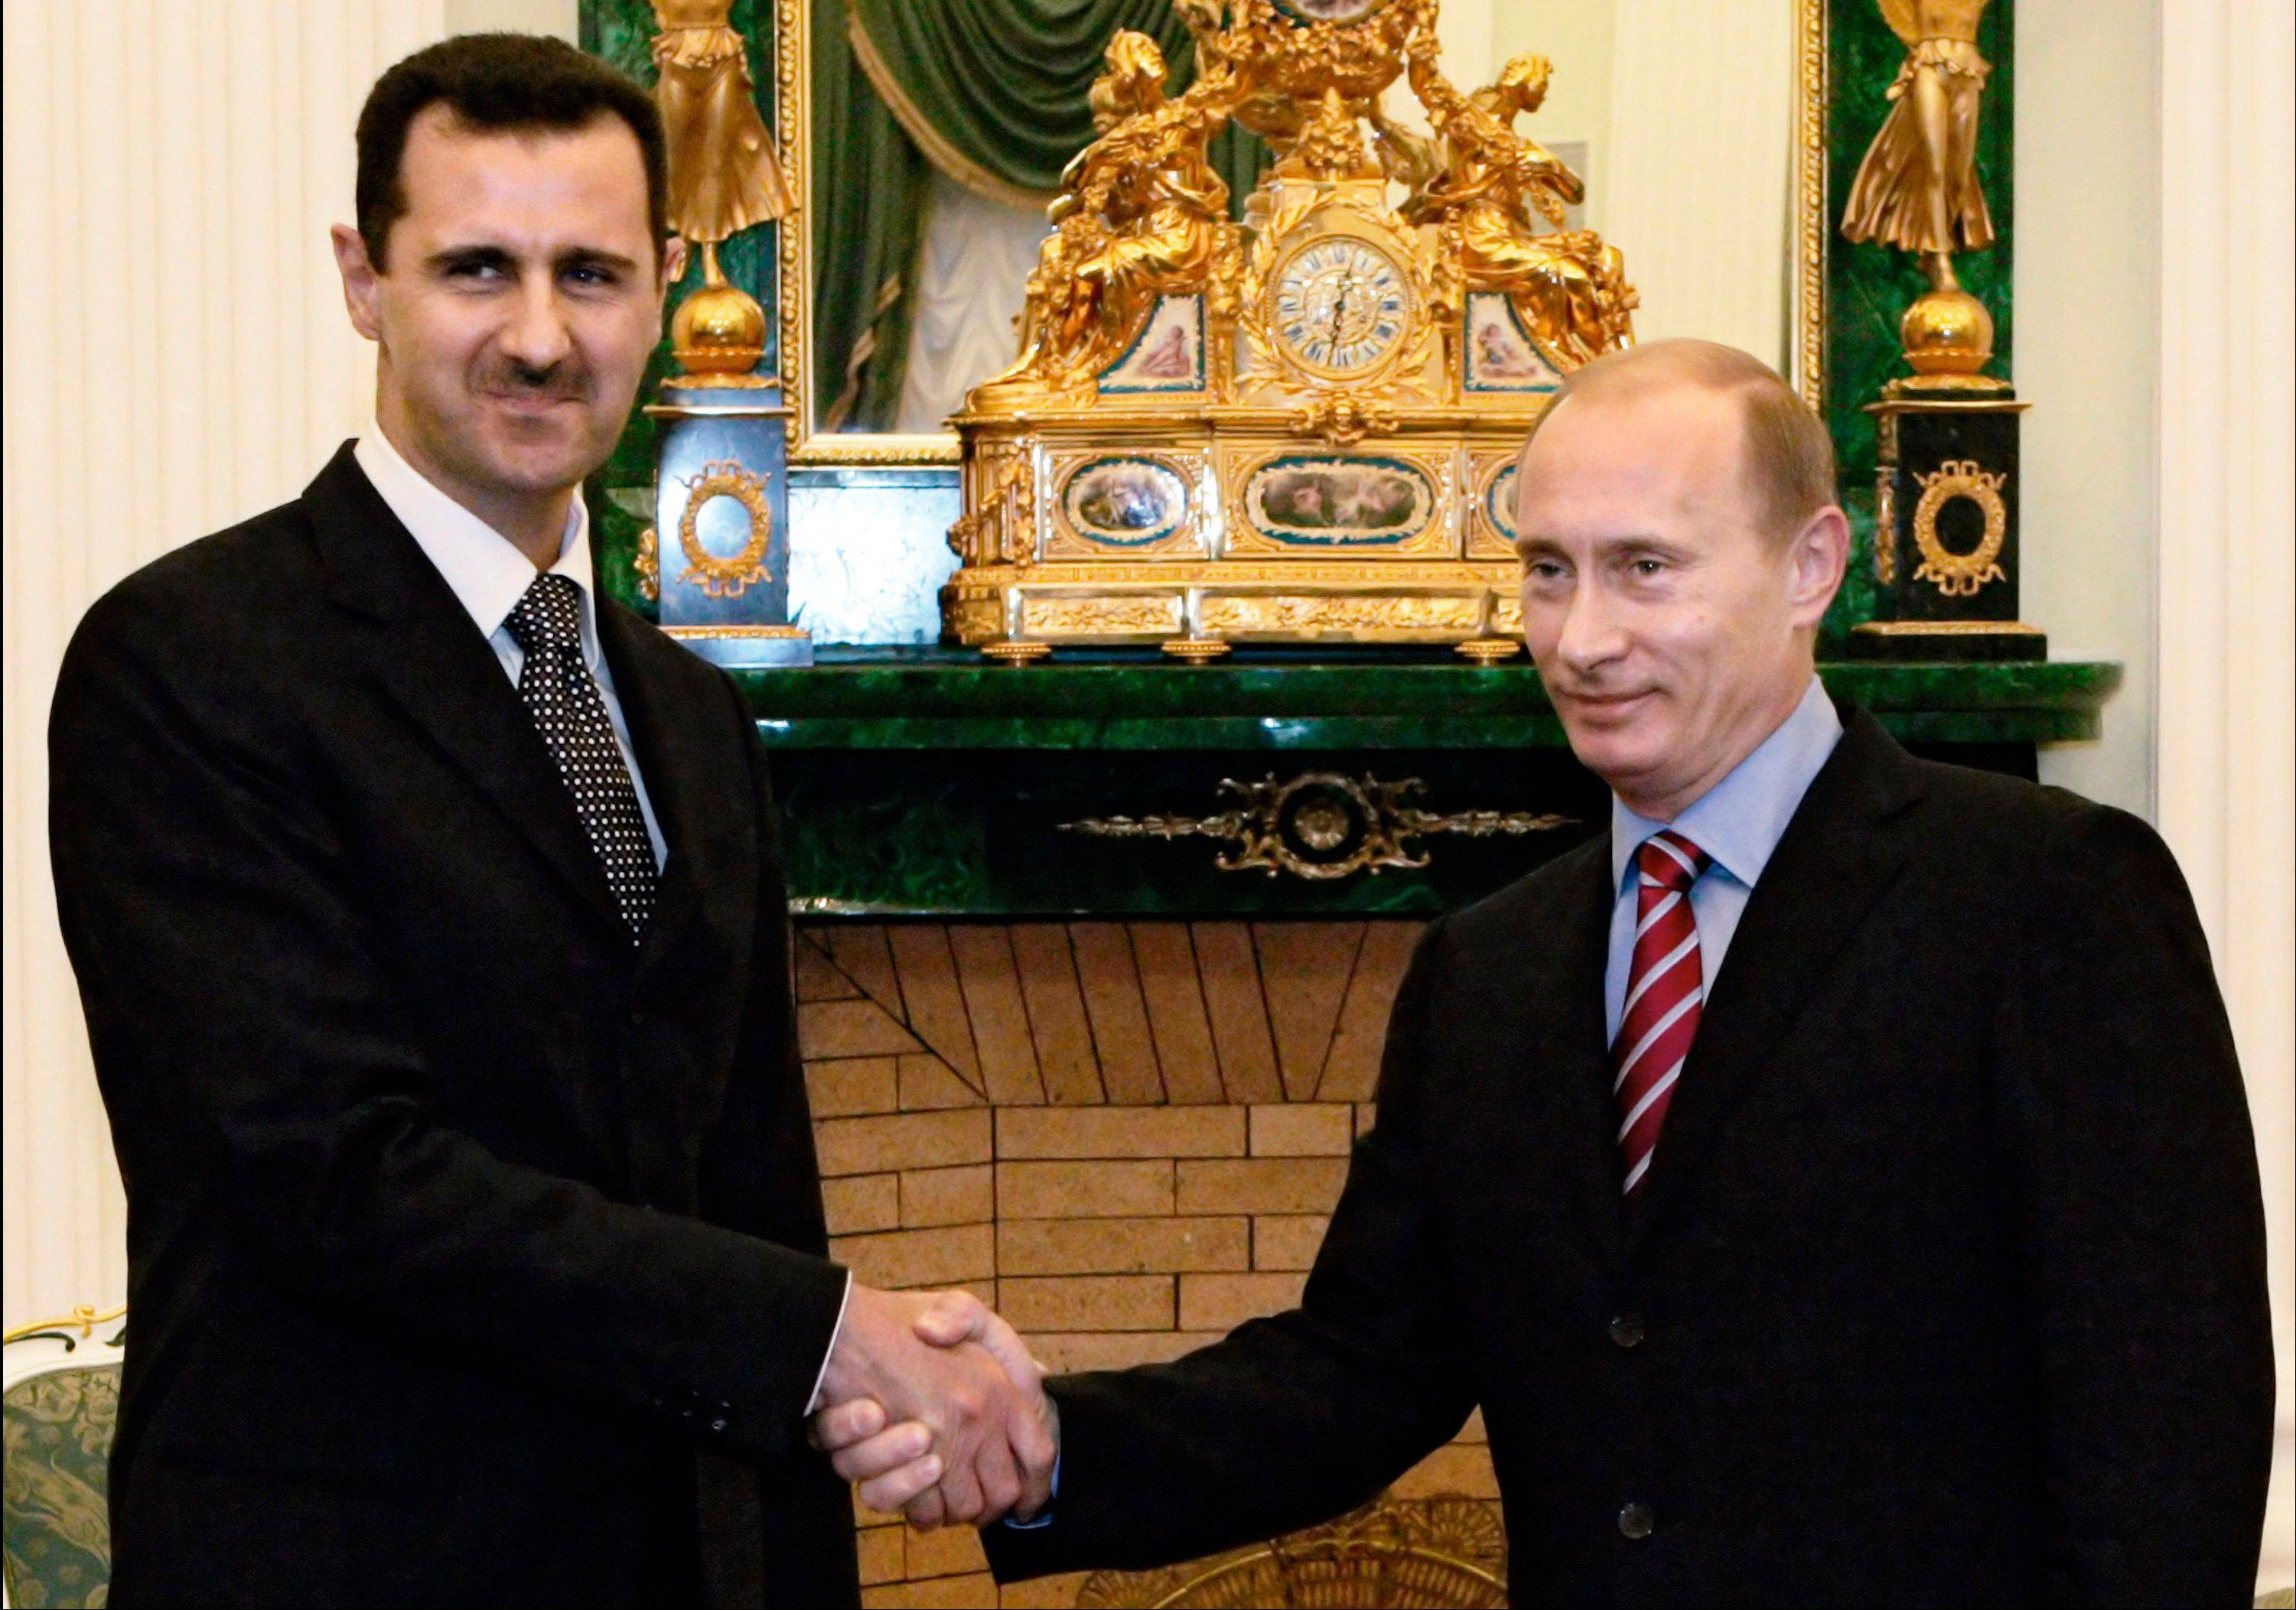 Vladimir Putin won a reprieve from U.S. missile attacks for his ally Bashar Assad. Now he has to trust a man few others do and show he can bring Assad to heel.